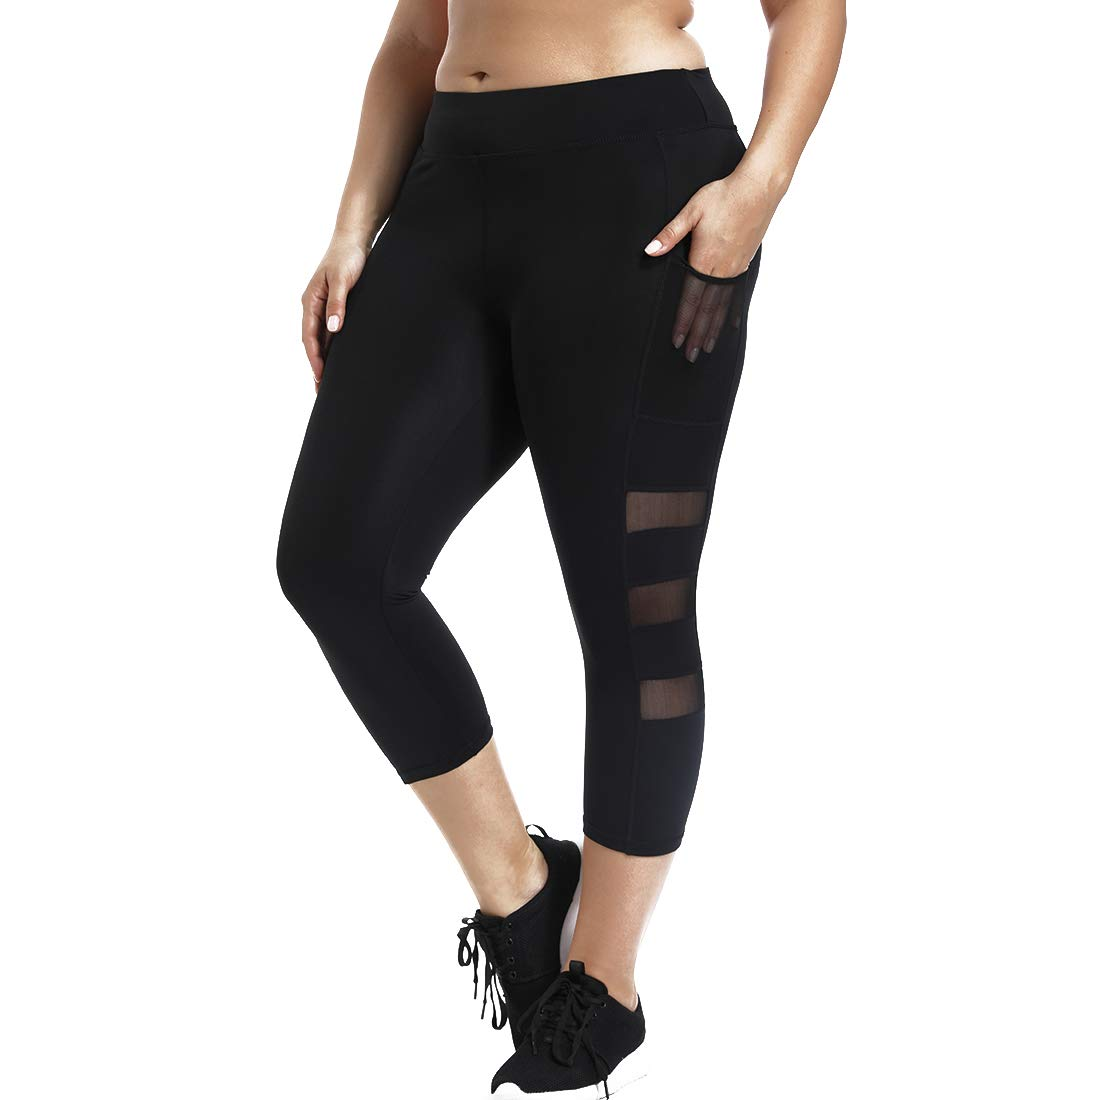 1a81fafc105ff ... Fit Clothing for Women. ✅Non See-Through,Give You Sexy Look.✅(Do NOT  worry that, we have improved the fabric) The material of this capri  leggings for ...